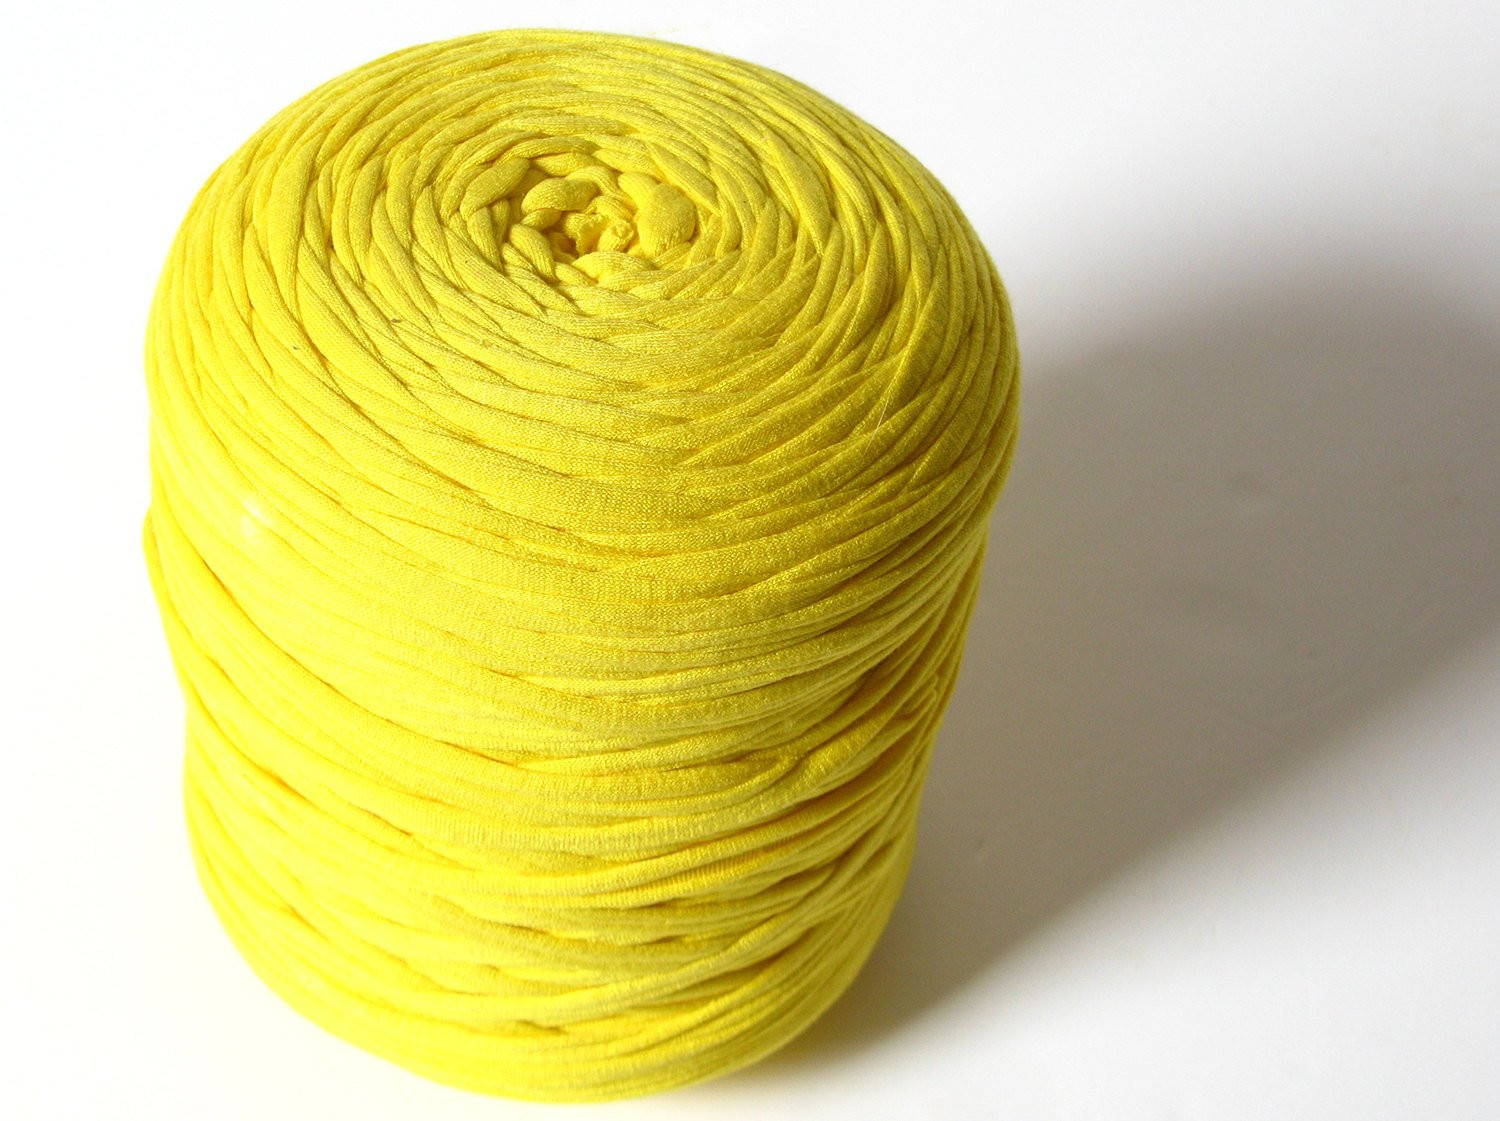 T shirt yarn Chunky bulky thick cotton yarn yellow